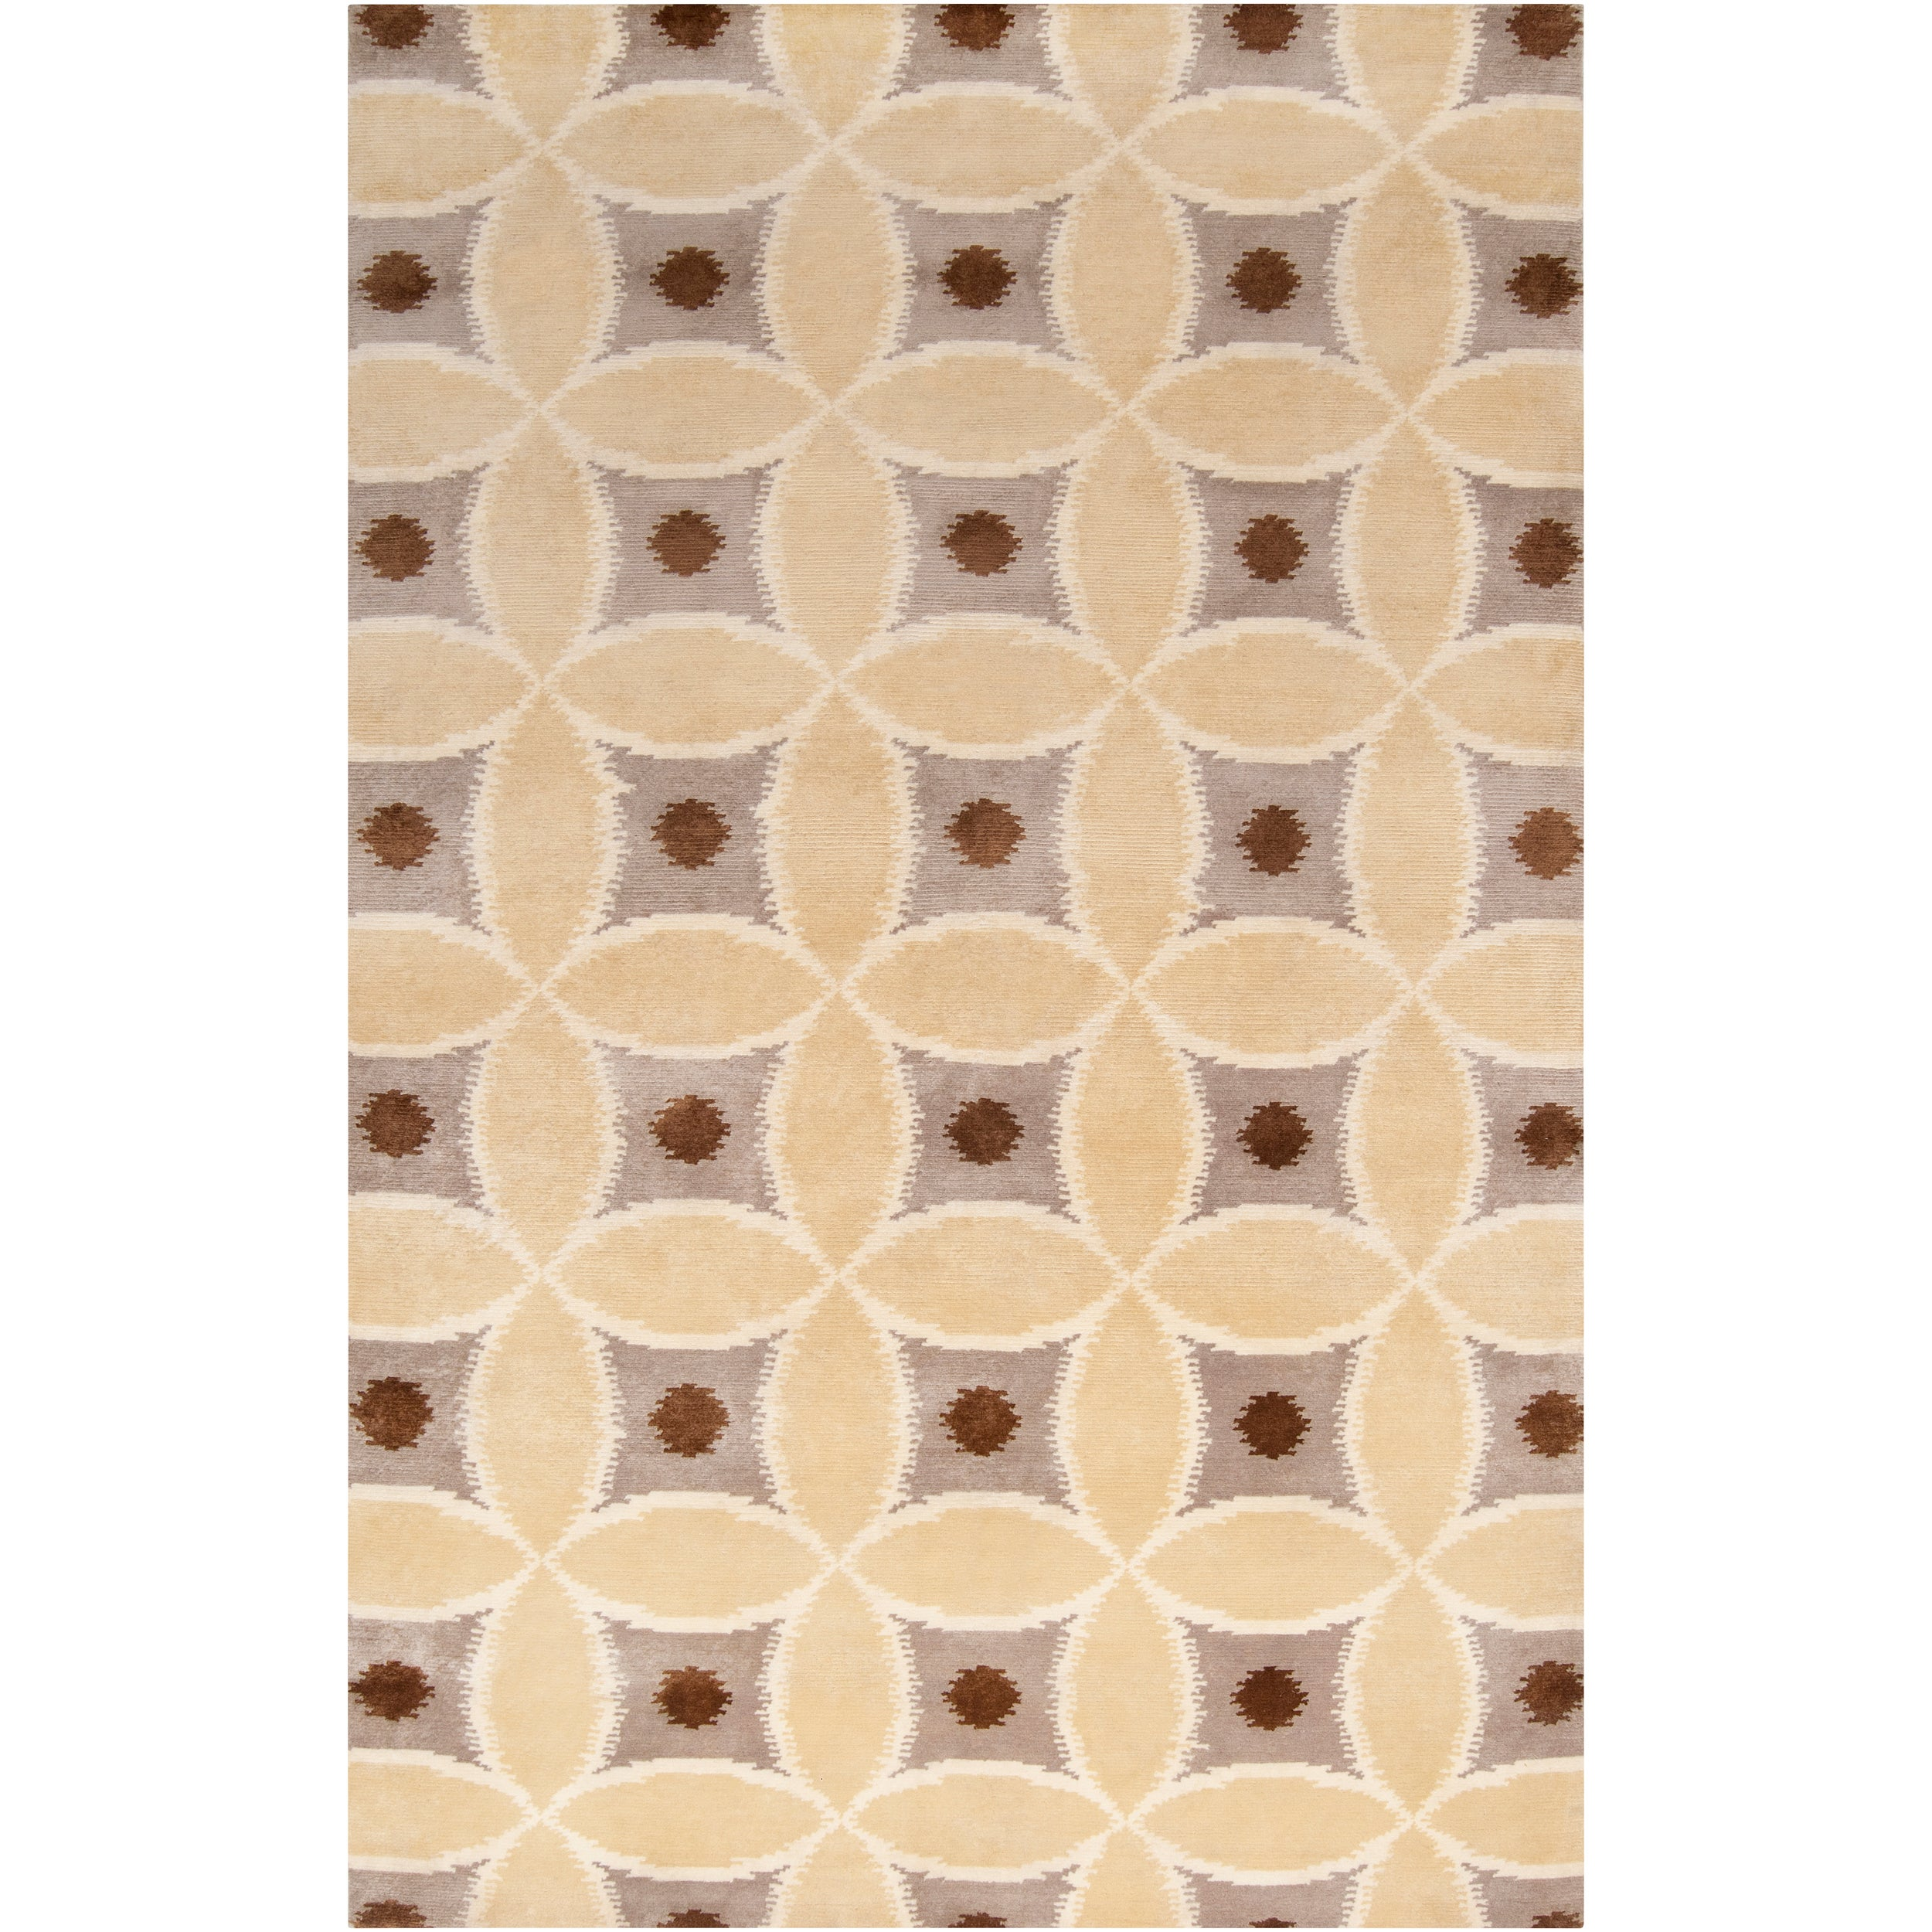 Hand-knotted 'Diego Martin' Brown Wool Area Rug (9' x 13')